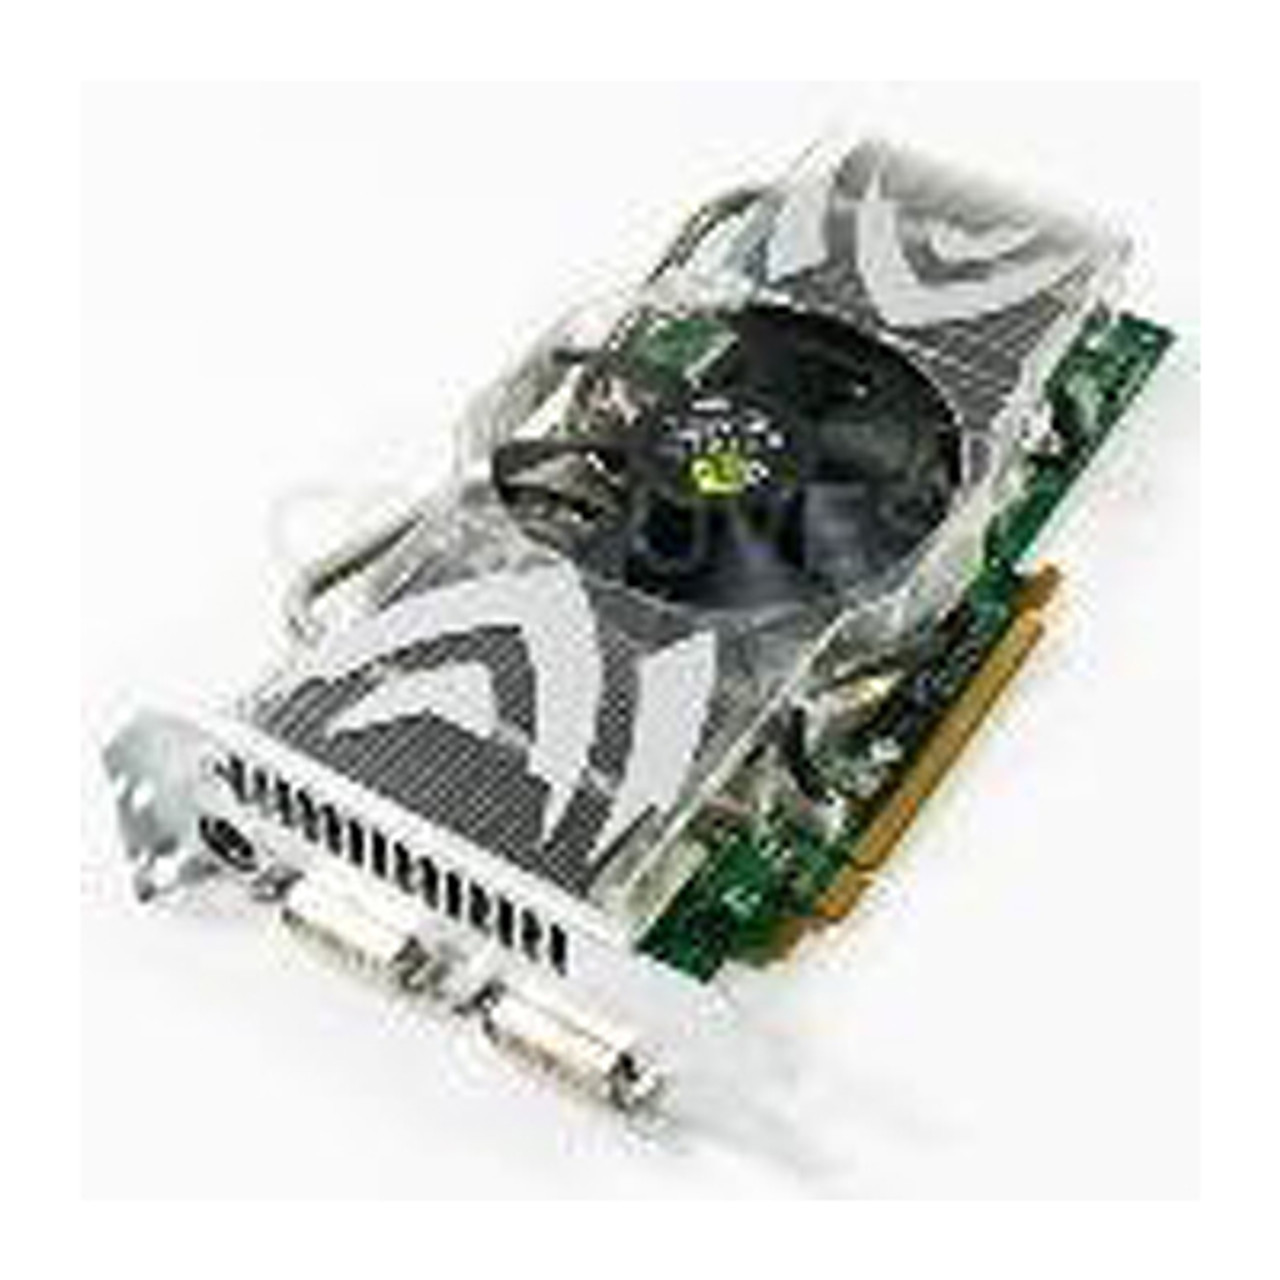 Nvidia Quadro FX 4500 512MB Dual DVI PCI-E Video Graphics Card 0KU705